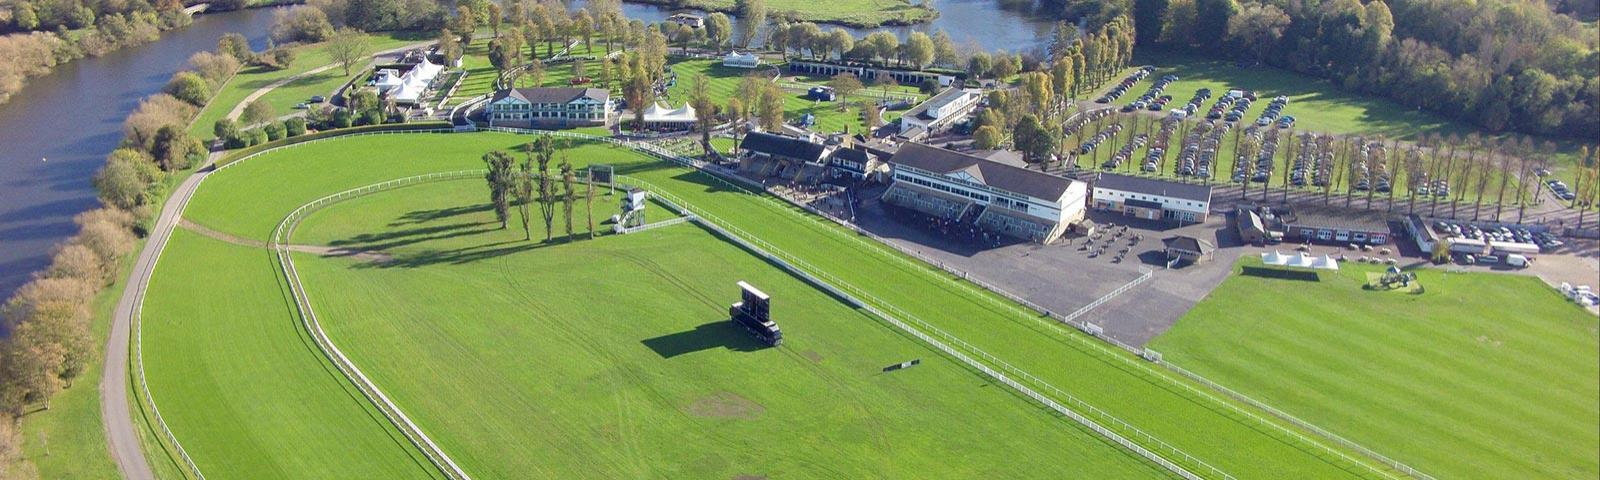 Aerial photo of the Royal Windsor Racecourse.